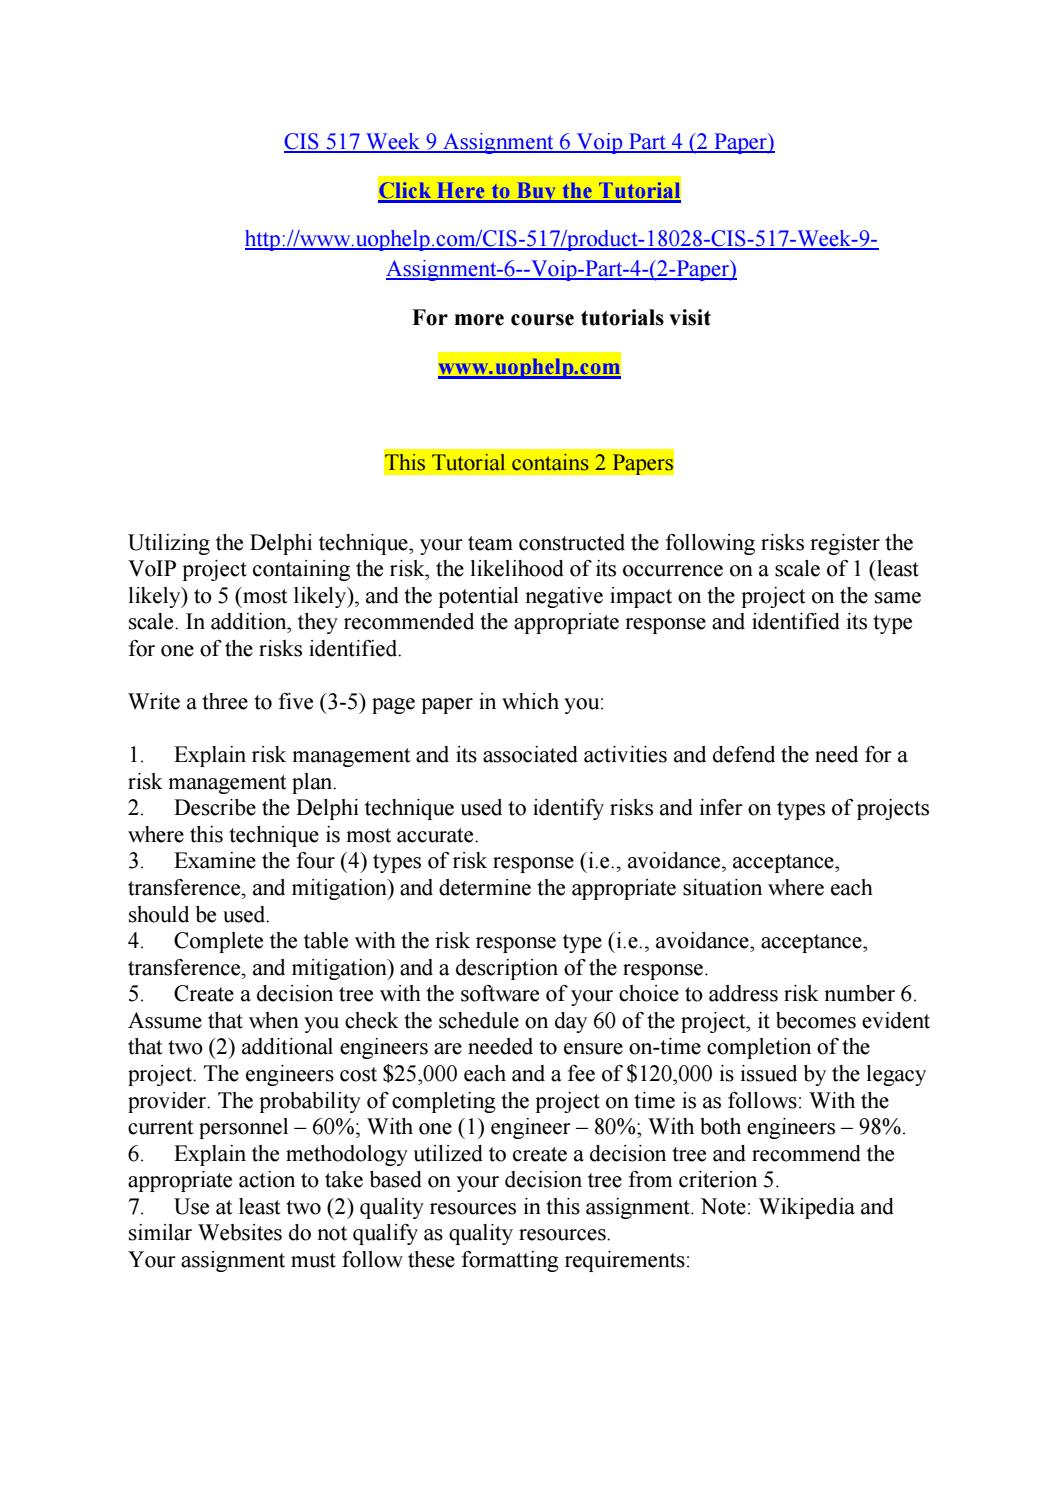 Cis 517 week 9 assignment 6 voip part 4 (2 paper) by